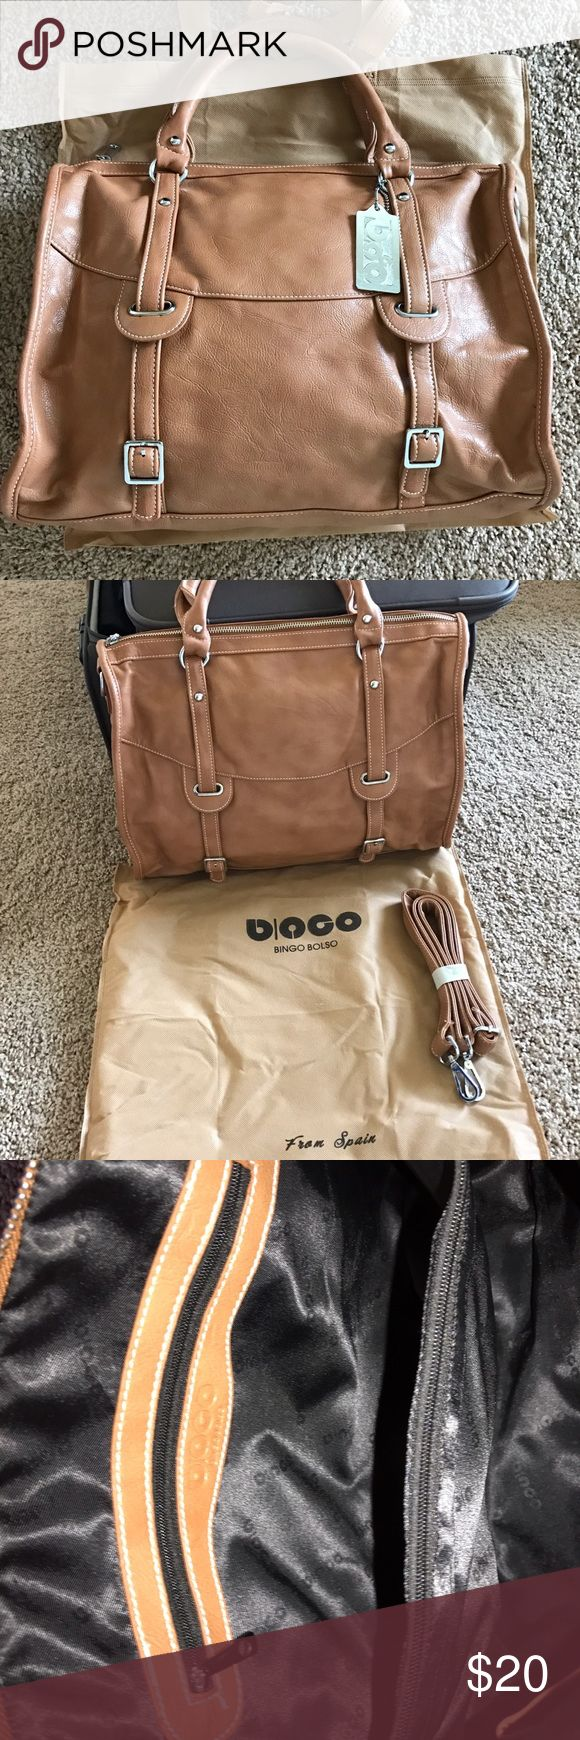 BINGO BOLSO tote bag Like new. Only one scratch. BINGO BOLSO Bags Totes